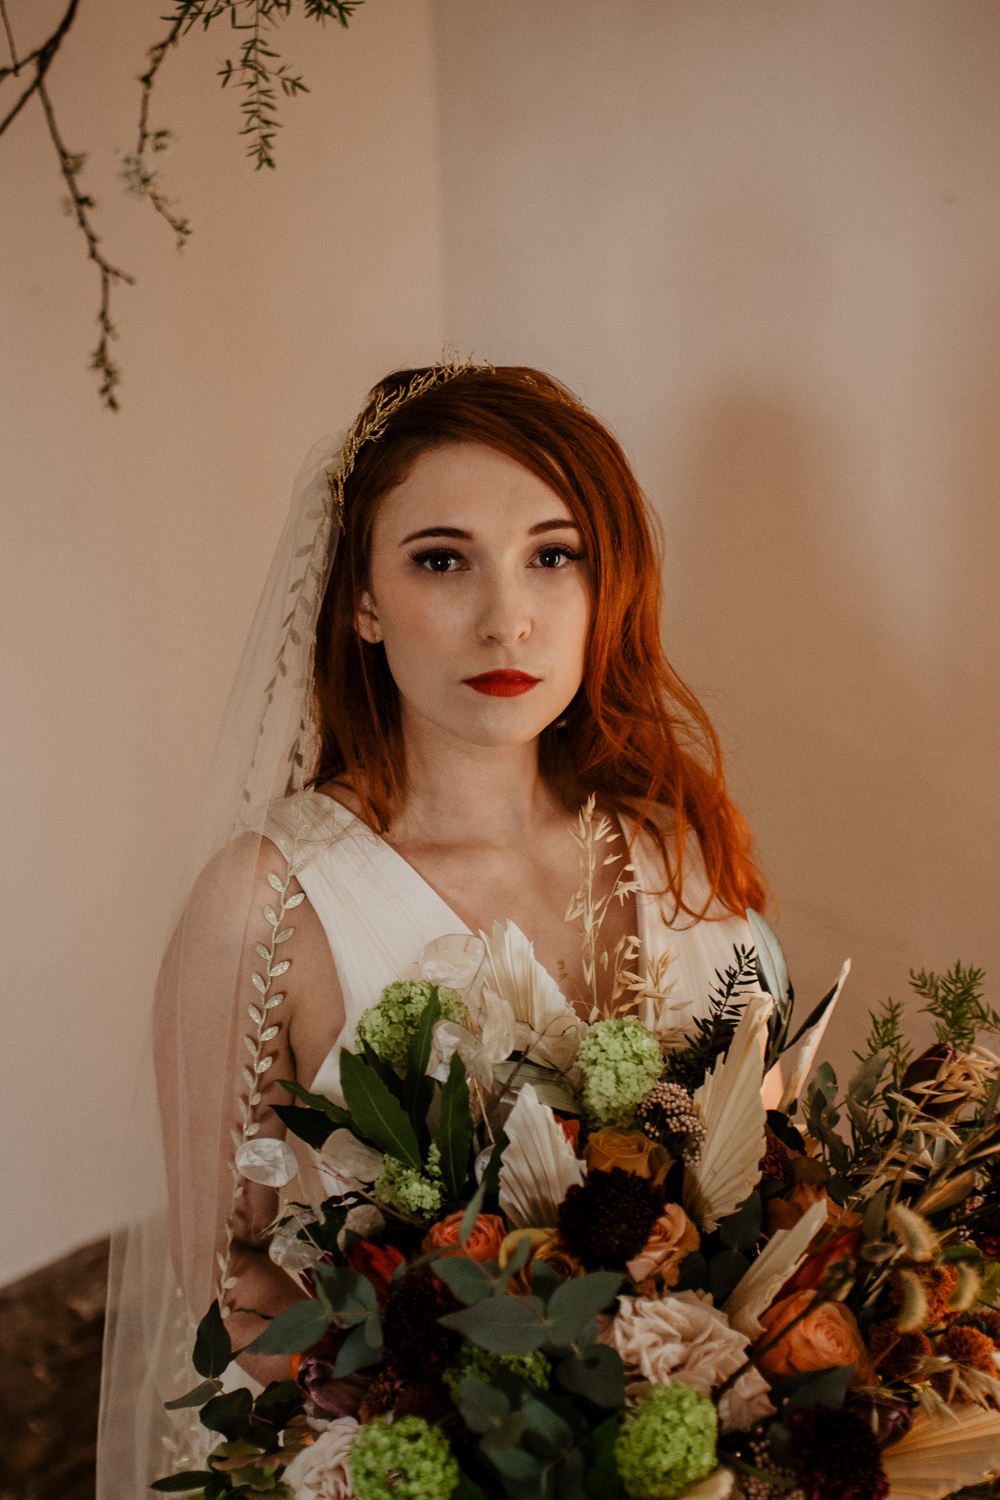 Bride Bridal Make Up Long Hair Waves Curls Veil Crown Bouquet Flowers Bride Bridal Ribbons Orange Rose Dried Flowers Seed Heads Large Oversized Autumn Fall Elopement Wedding Ideas Oilvejoy Photography